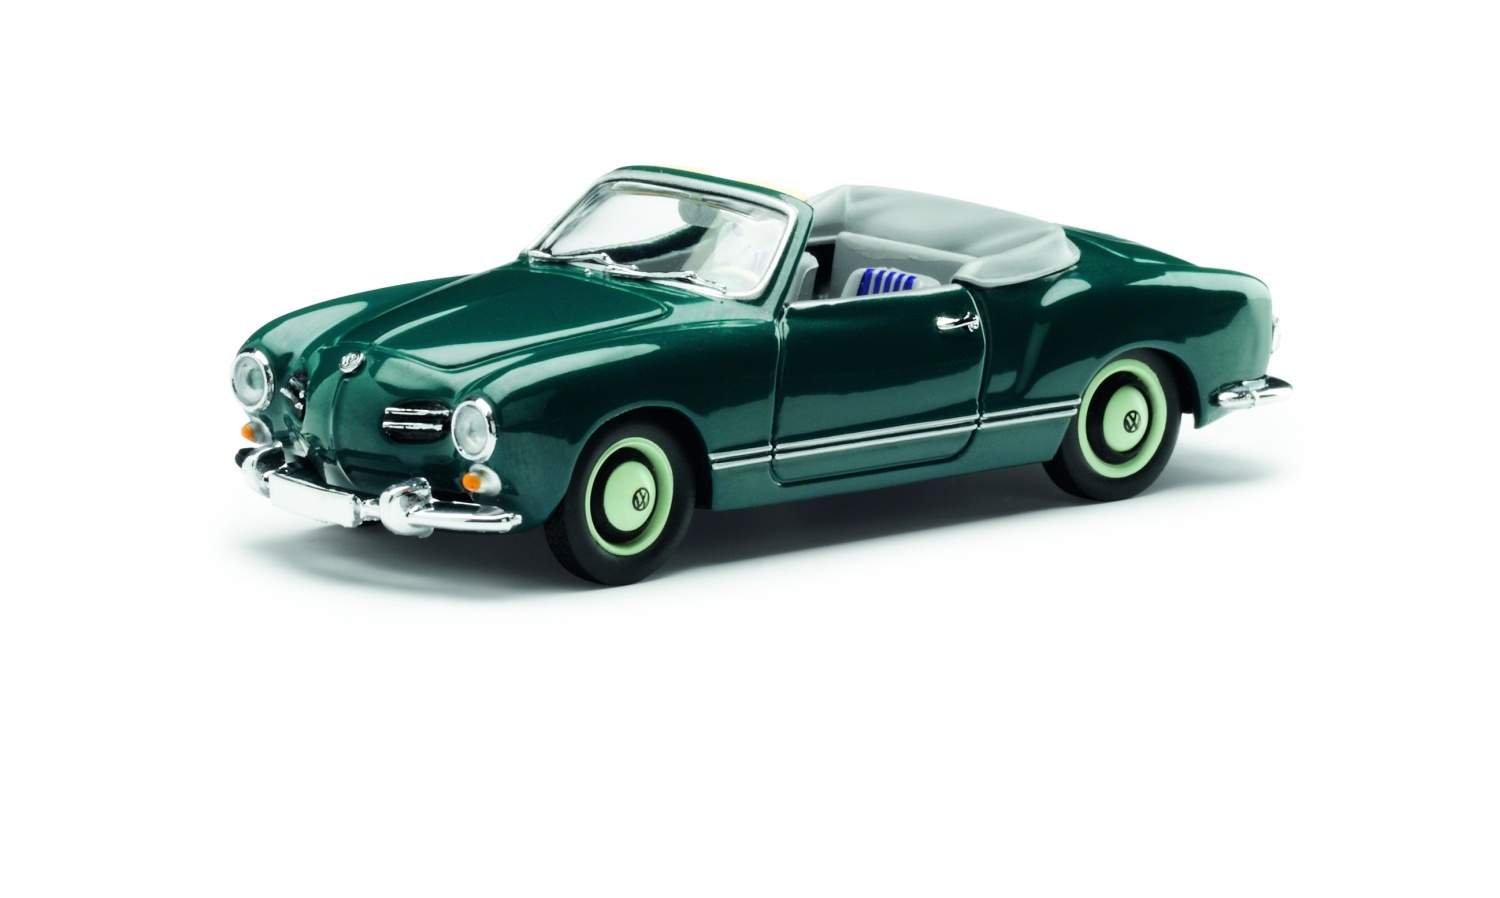 Karmann Ghia 1957, escala 1:43 - Ítem1